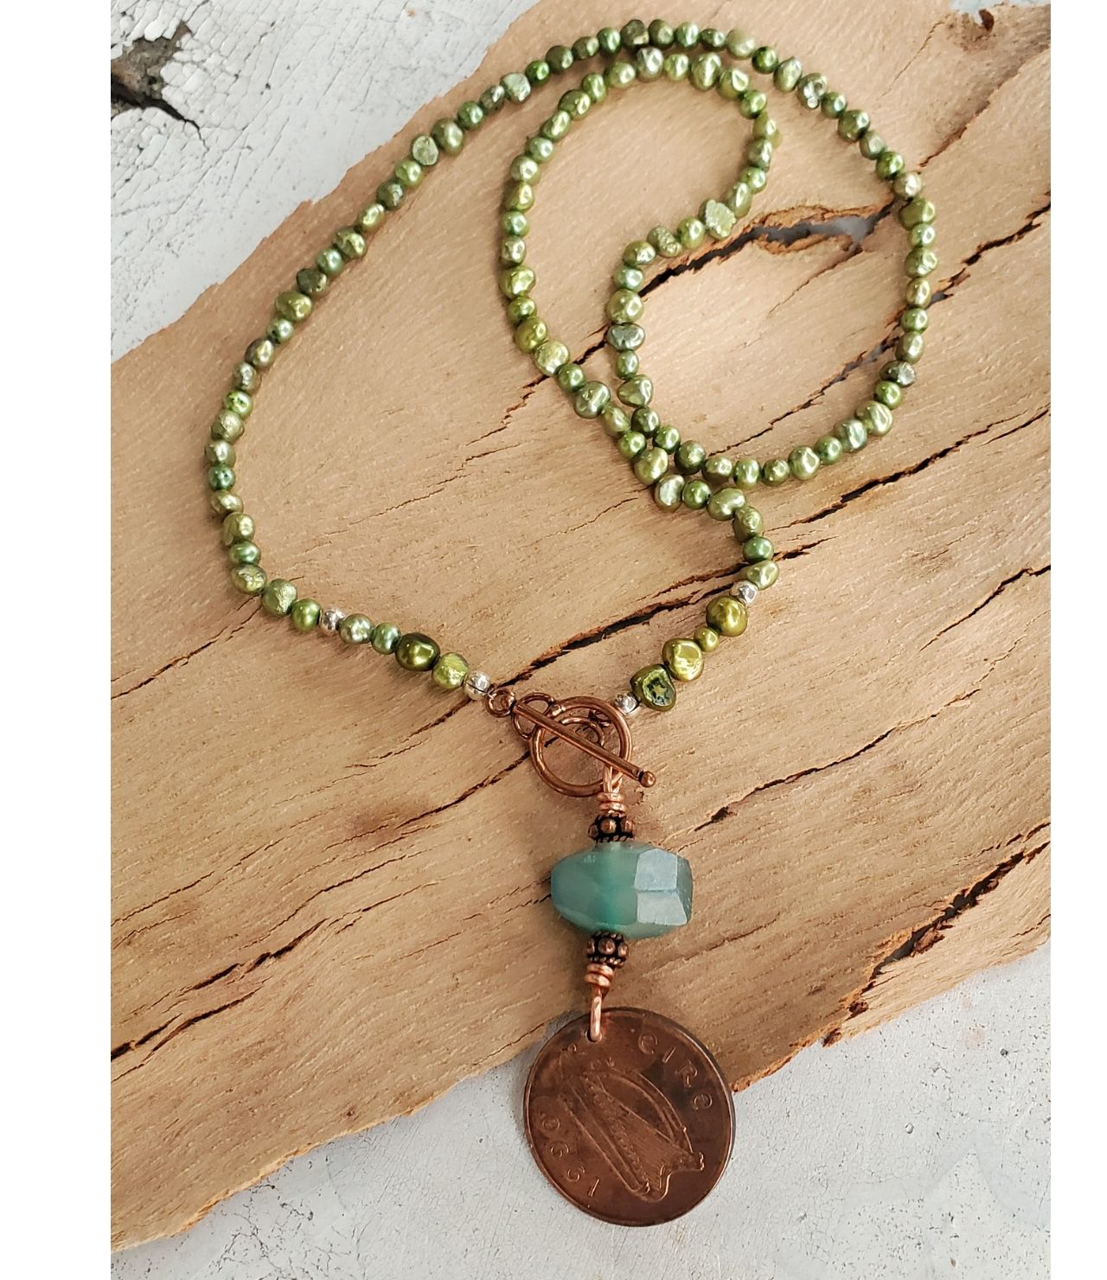 old vintage coin green pearl teal gemstone necklace on wood